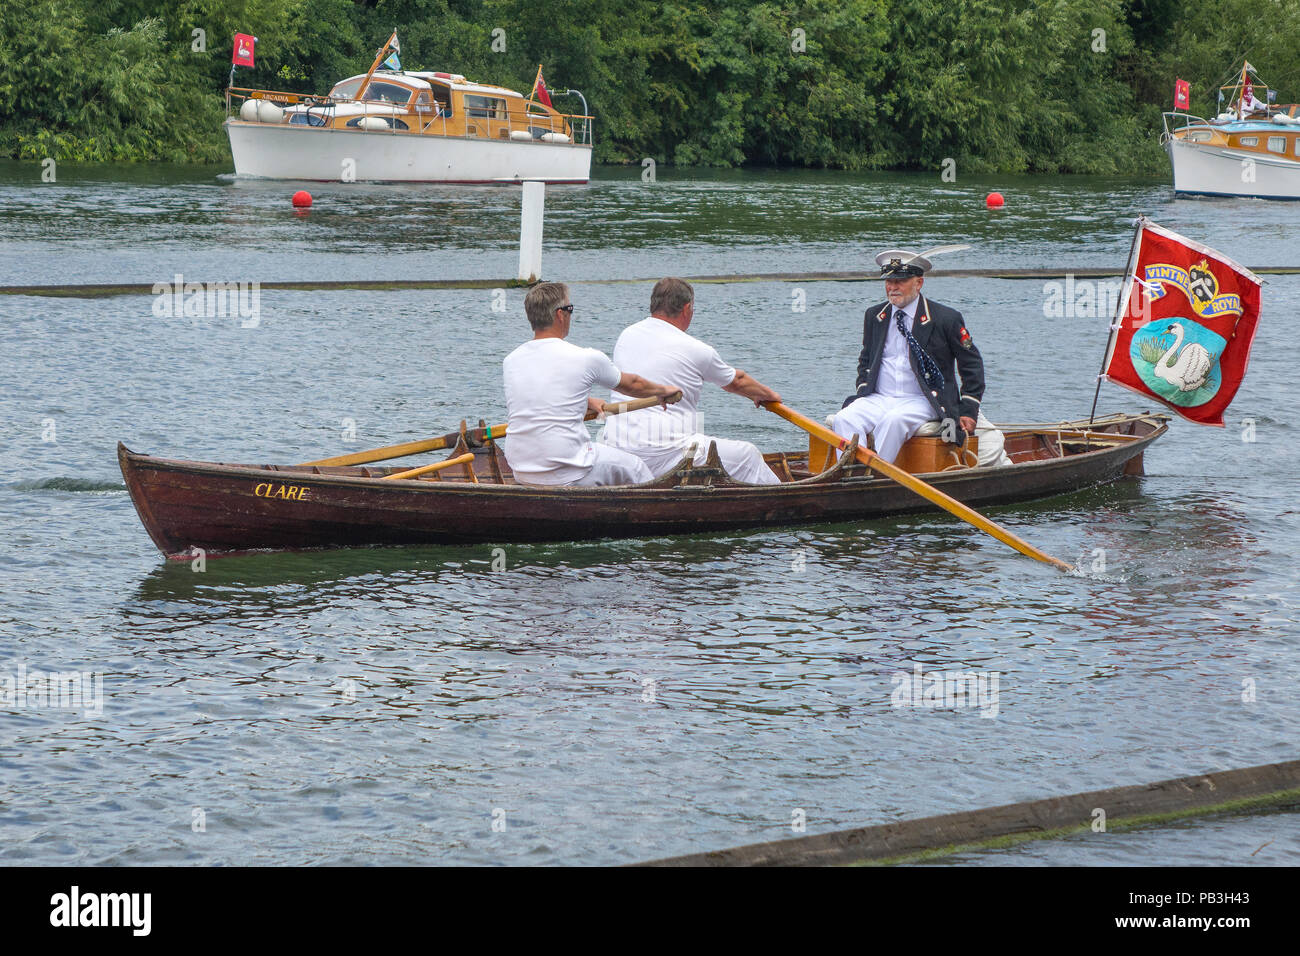 England, Oxfordshire, Henley, Swan Upping on River Thames, skiff of the Vintners Livery company - Stock Image